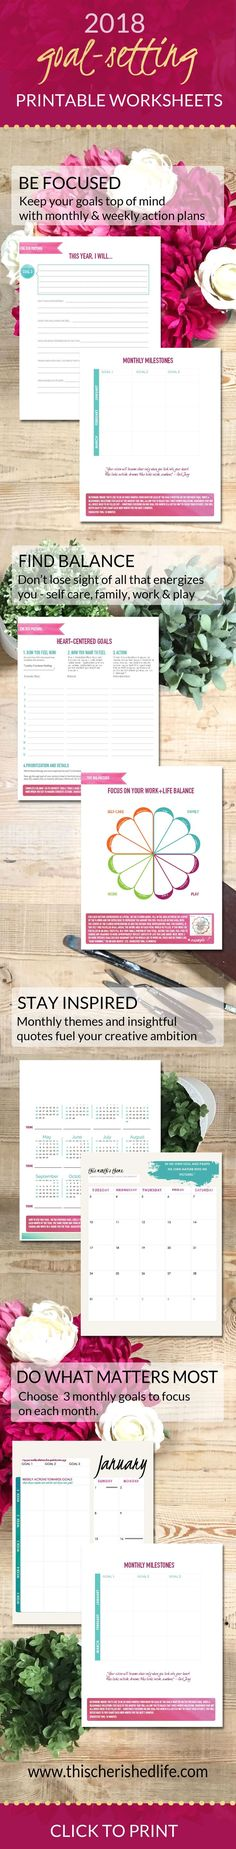 The power of goal-setting with printable goal-setting worksheets for creatives and working moms 2018 planner and 2018 monthly planner with goal setting for 2018 and free worksheets